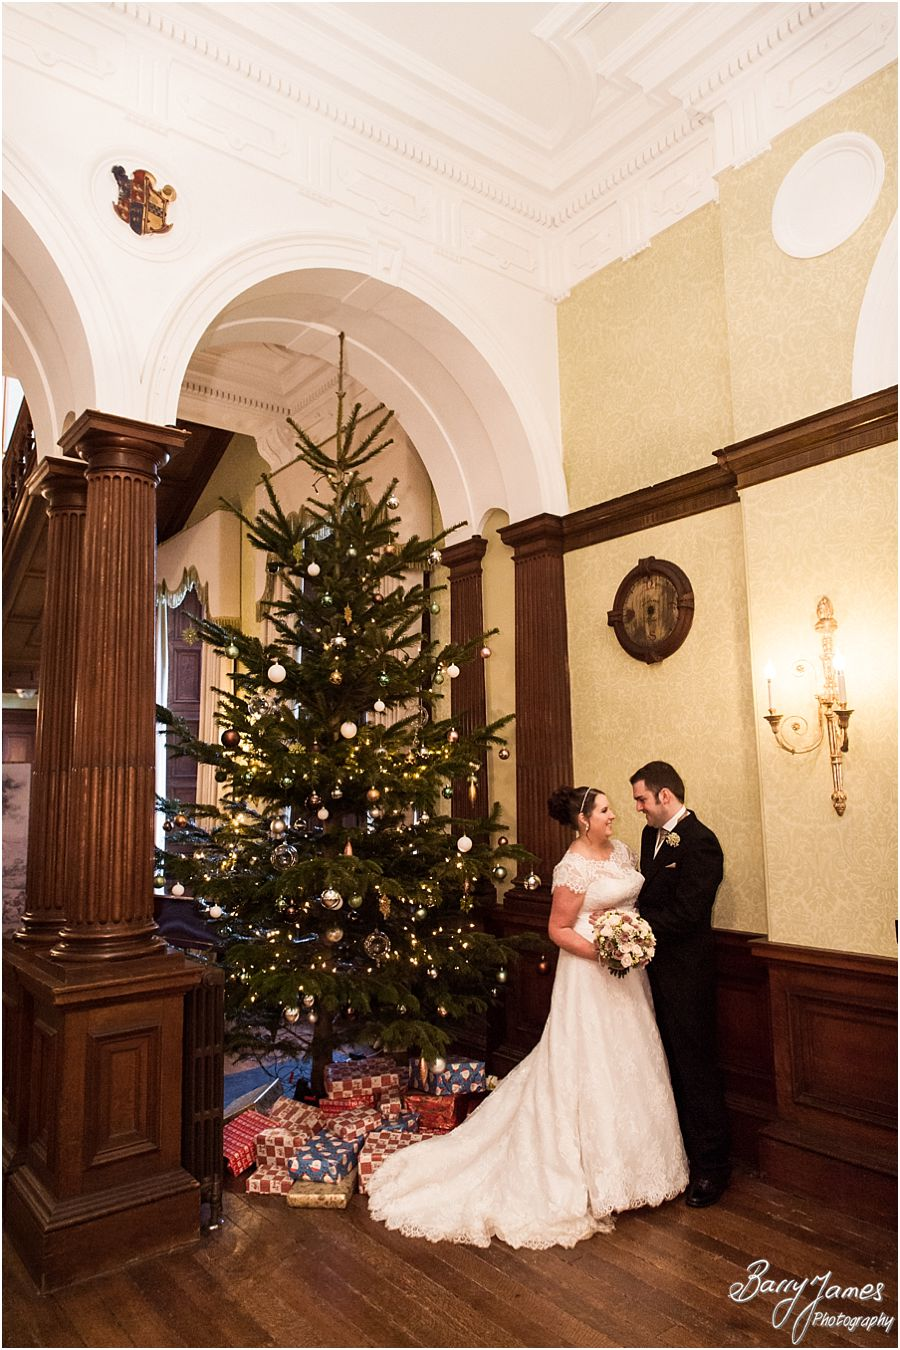 Warm and cosy Christmas Wedding at Sandon Hall in Stafford by Staffordshire Wedding Photographer Barry James